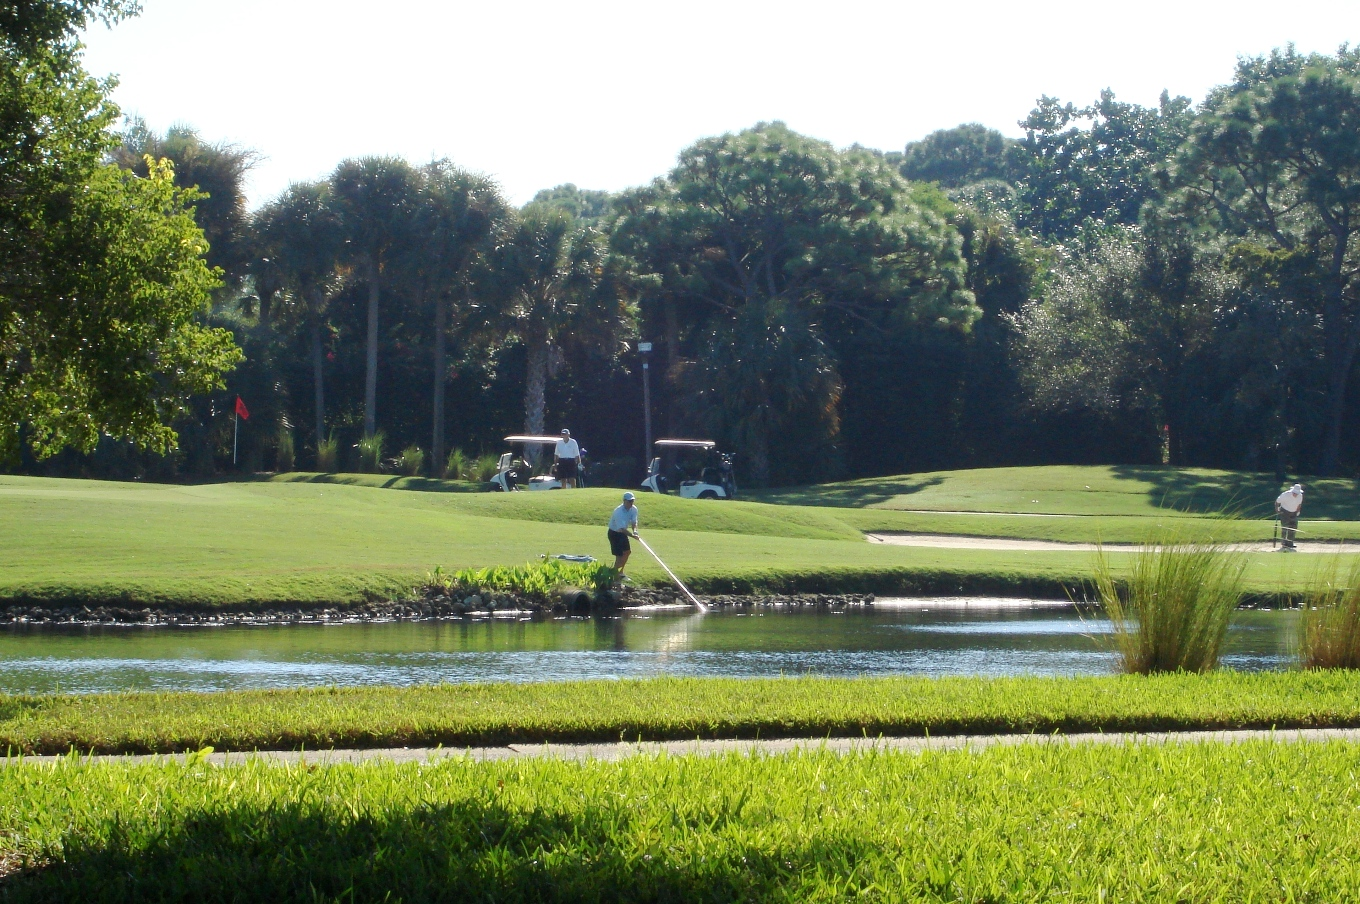 Naples FL - Golf Course in Pelican Bay